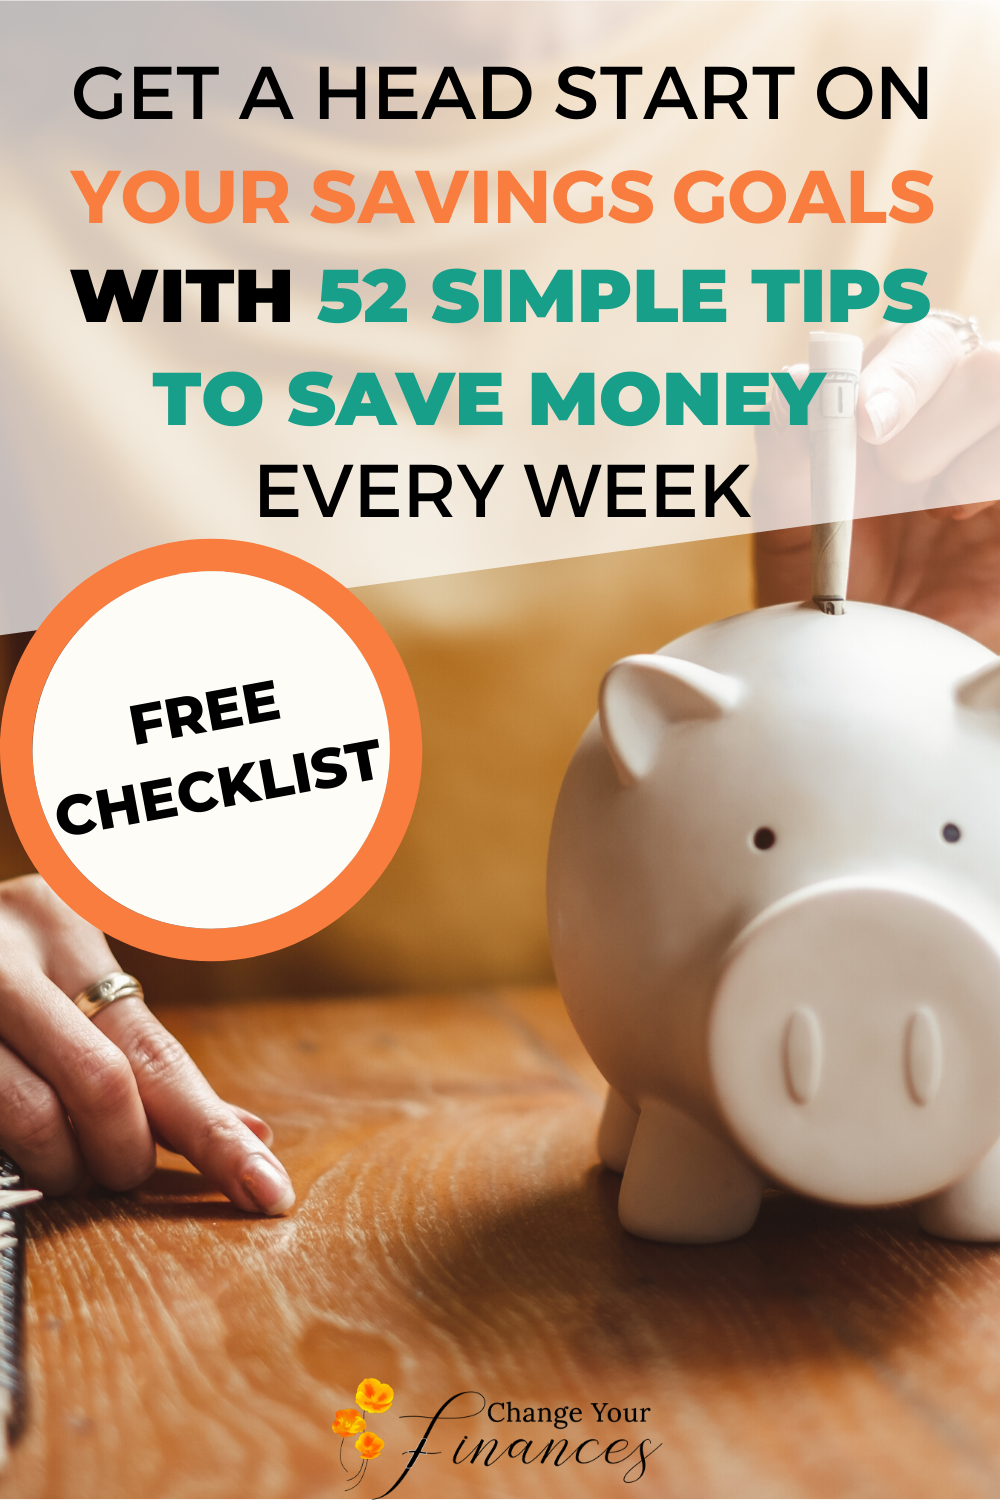 52 Simple tips to greatly reduce your monthly expenses, boost your savings, and create financial peace. Do one each week and crush your savings goals! #savings #savingmoney #savemoney #freeworksheet #savingsgoals #savingtips #moneytips #moneygoals #personalfinance #finance #budget #payoffdebt |Change Your Finances